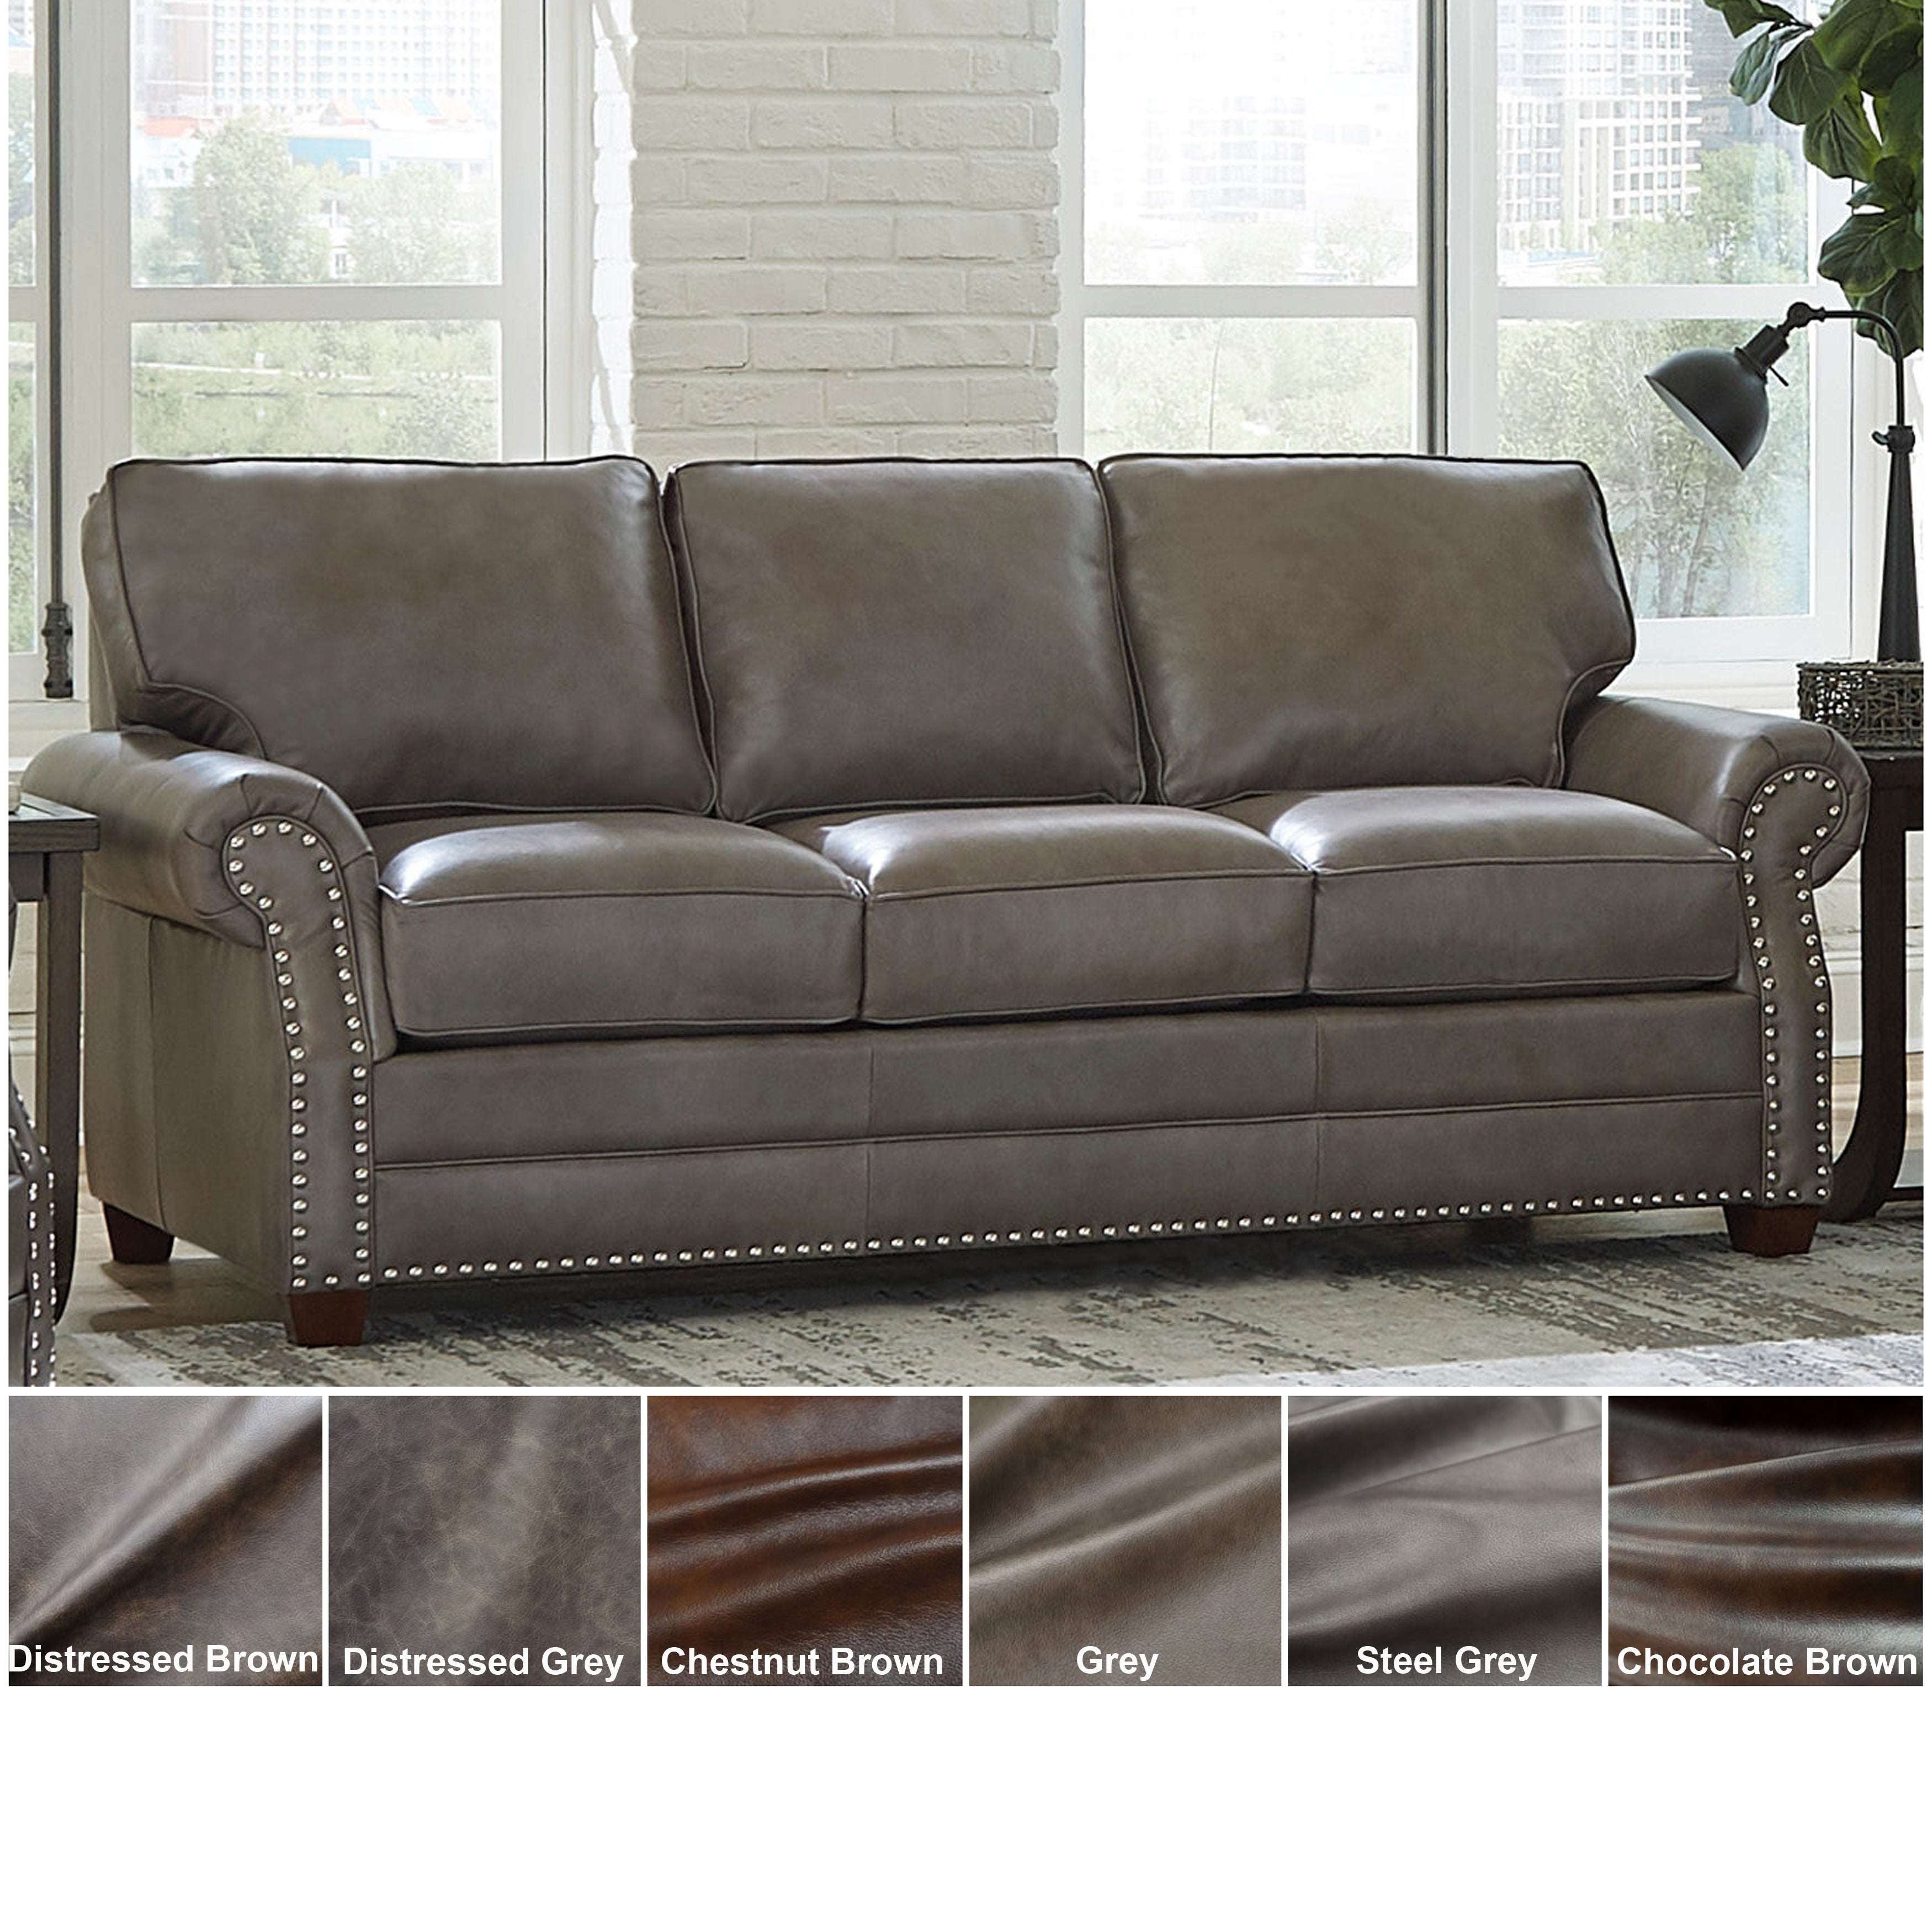 Surprising Buy Nailheads Leather Sofas Couches Online At Overstock Theyellowbook Wood Chair Design Ideas Theyellowbookinfo